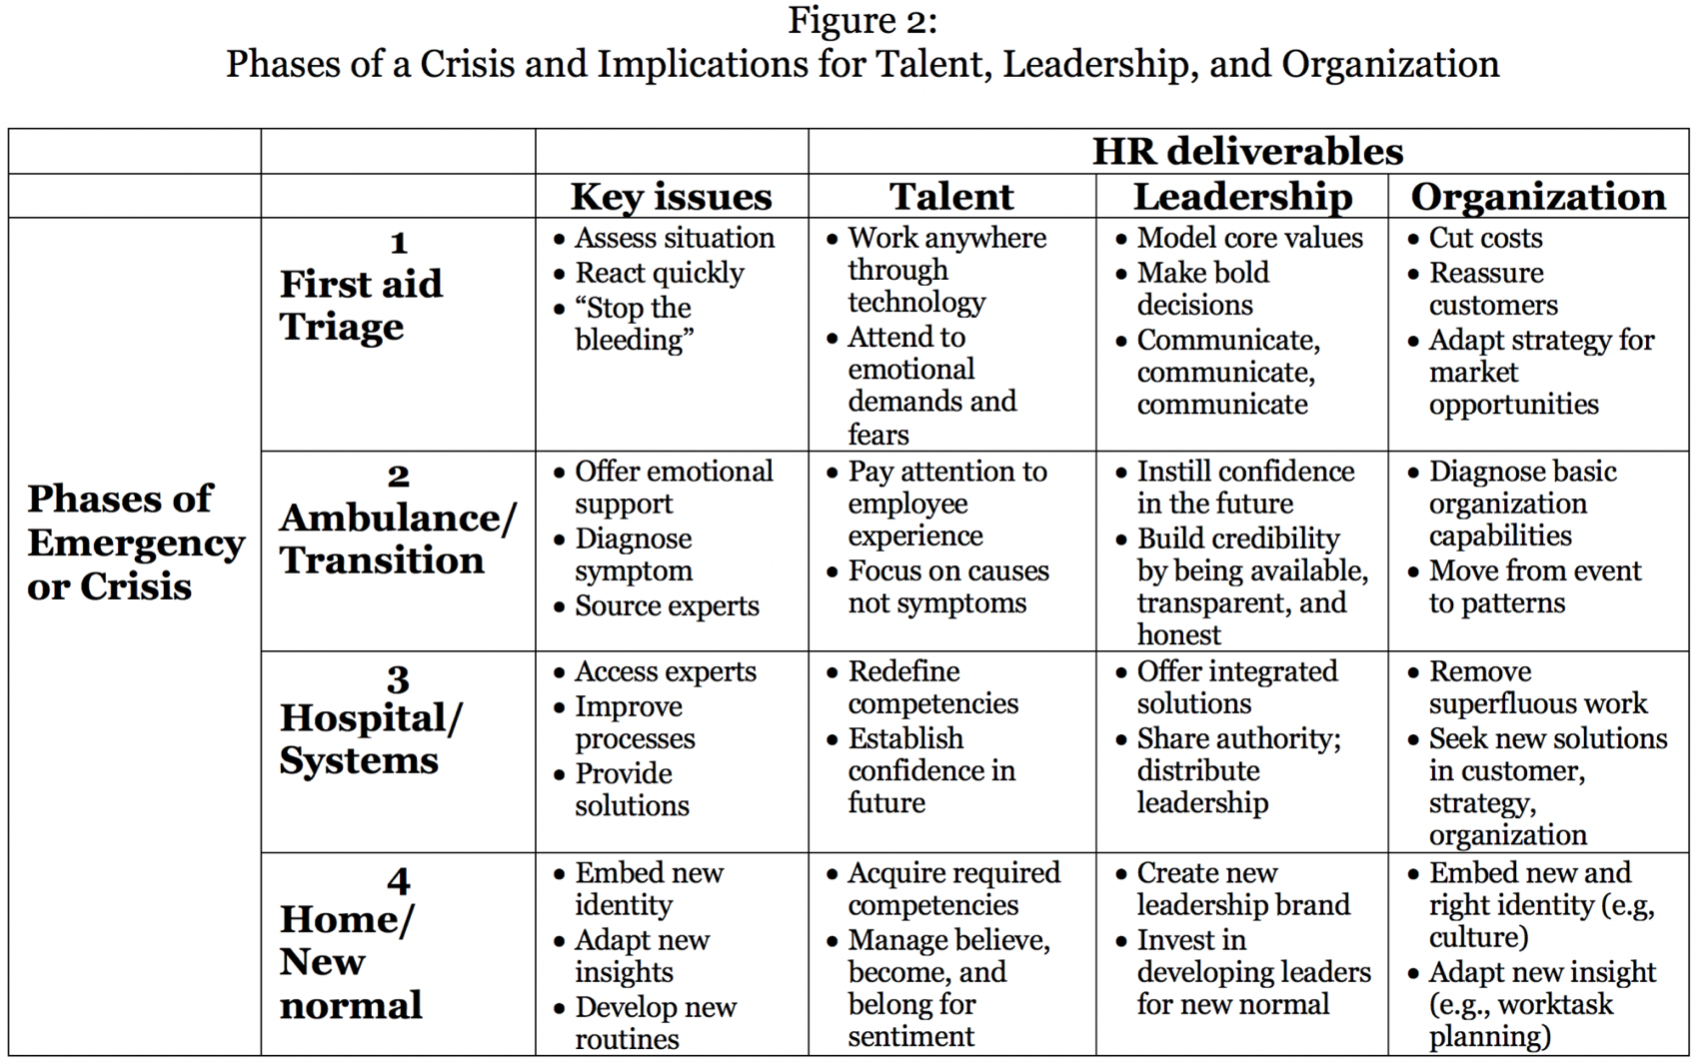 Table: Phases of a Crisis and Implications for Talent, Leadership, and Organization